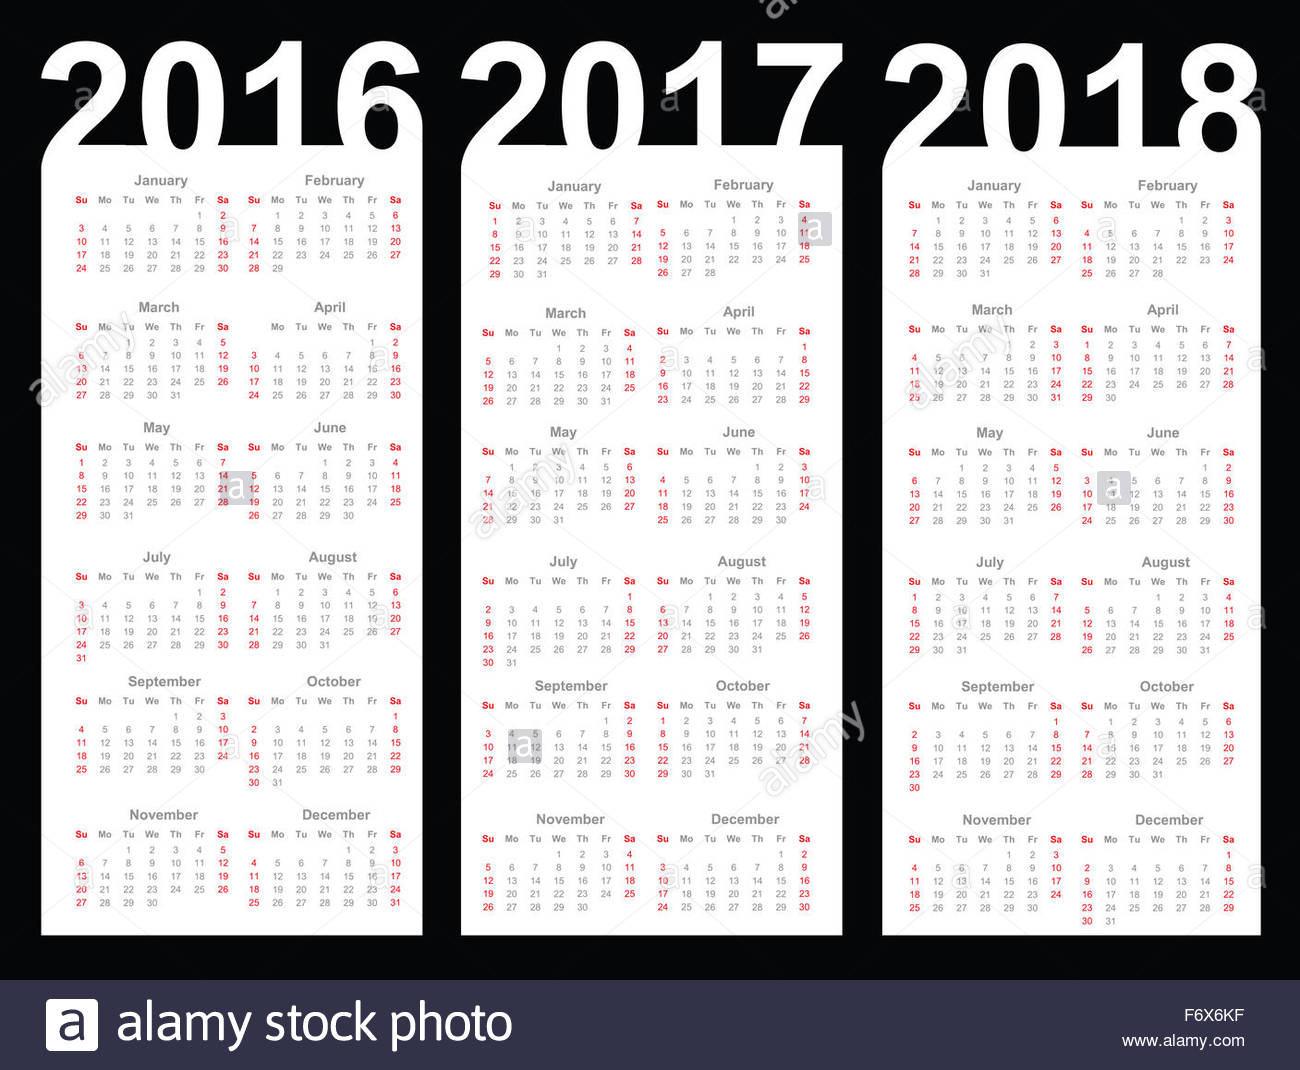 2018 Calendar Retail – 2019 New Year Images Pertaining To 2020 National Retail Federation 4 5 4 Printable Calendar